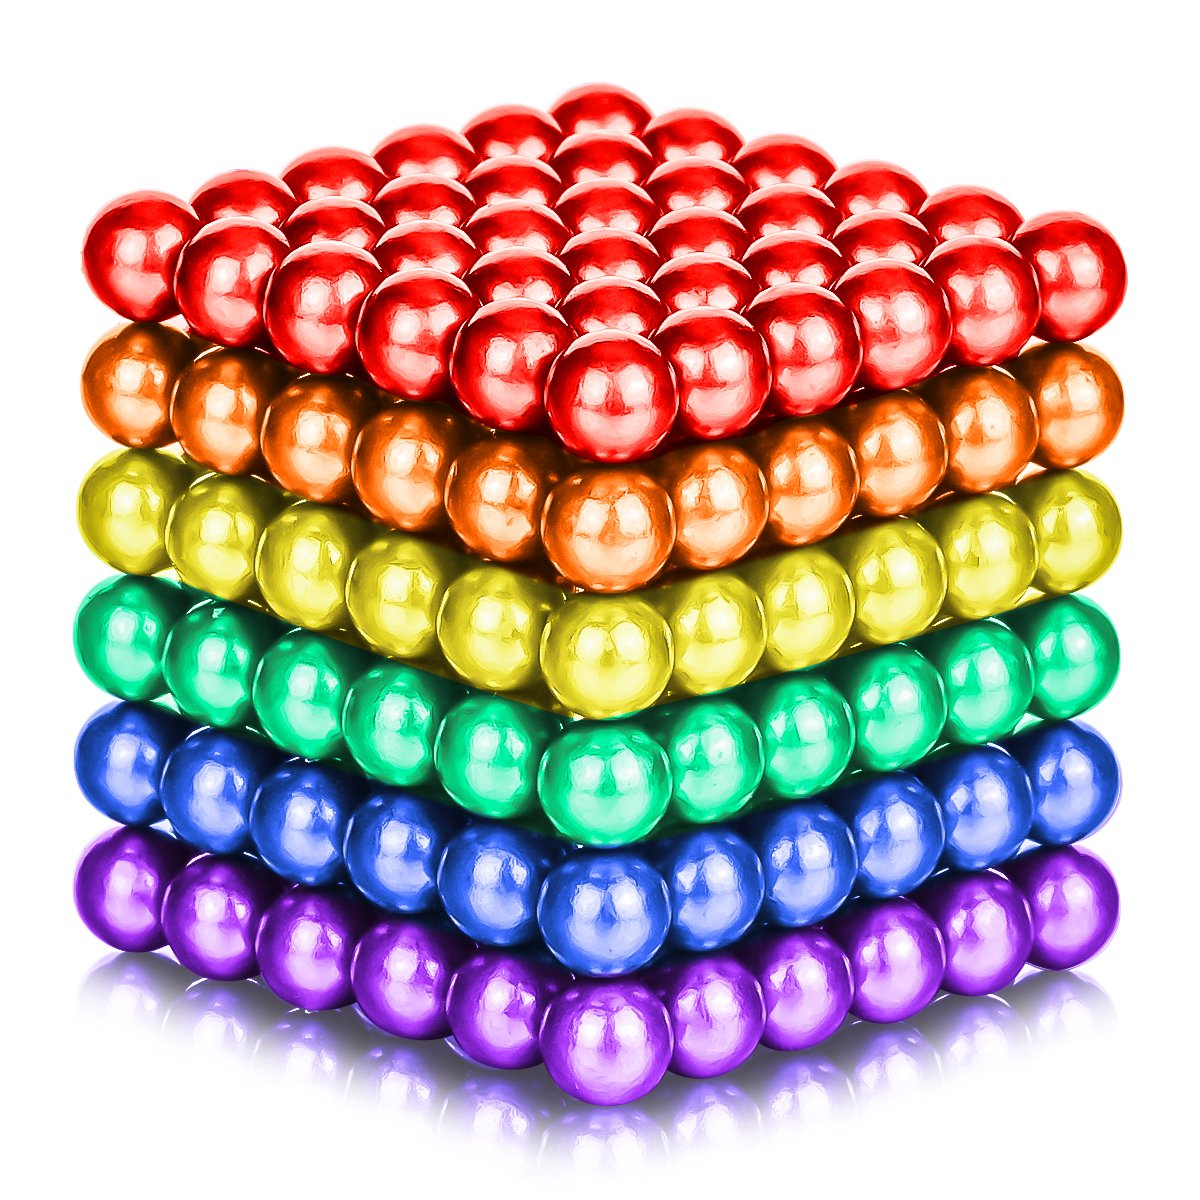 ATESSON Magnetic Sculpture Balls Intellectual Office Toys Anxiety Stress Relief Killing Time Puzzle Creative Educational Toys for Kids Adults (6 Colors,5mm)